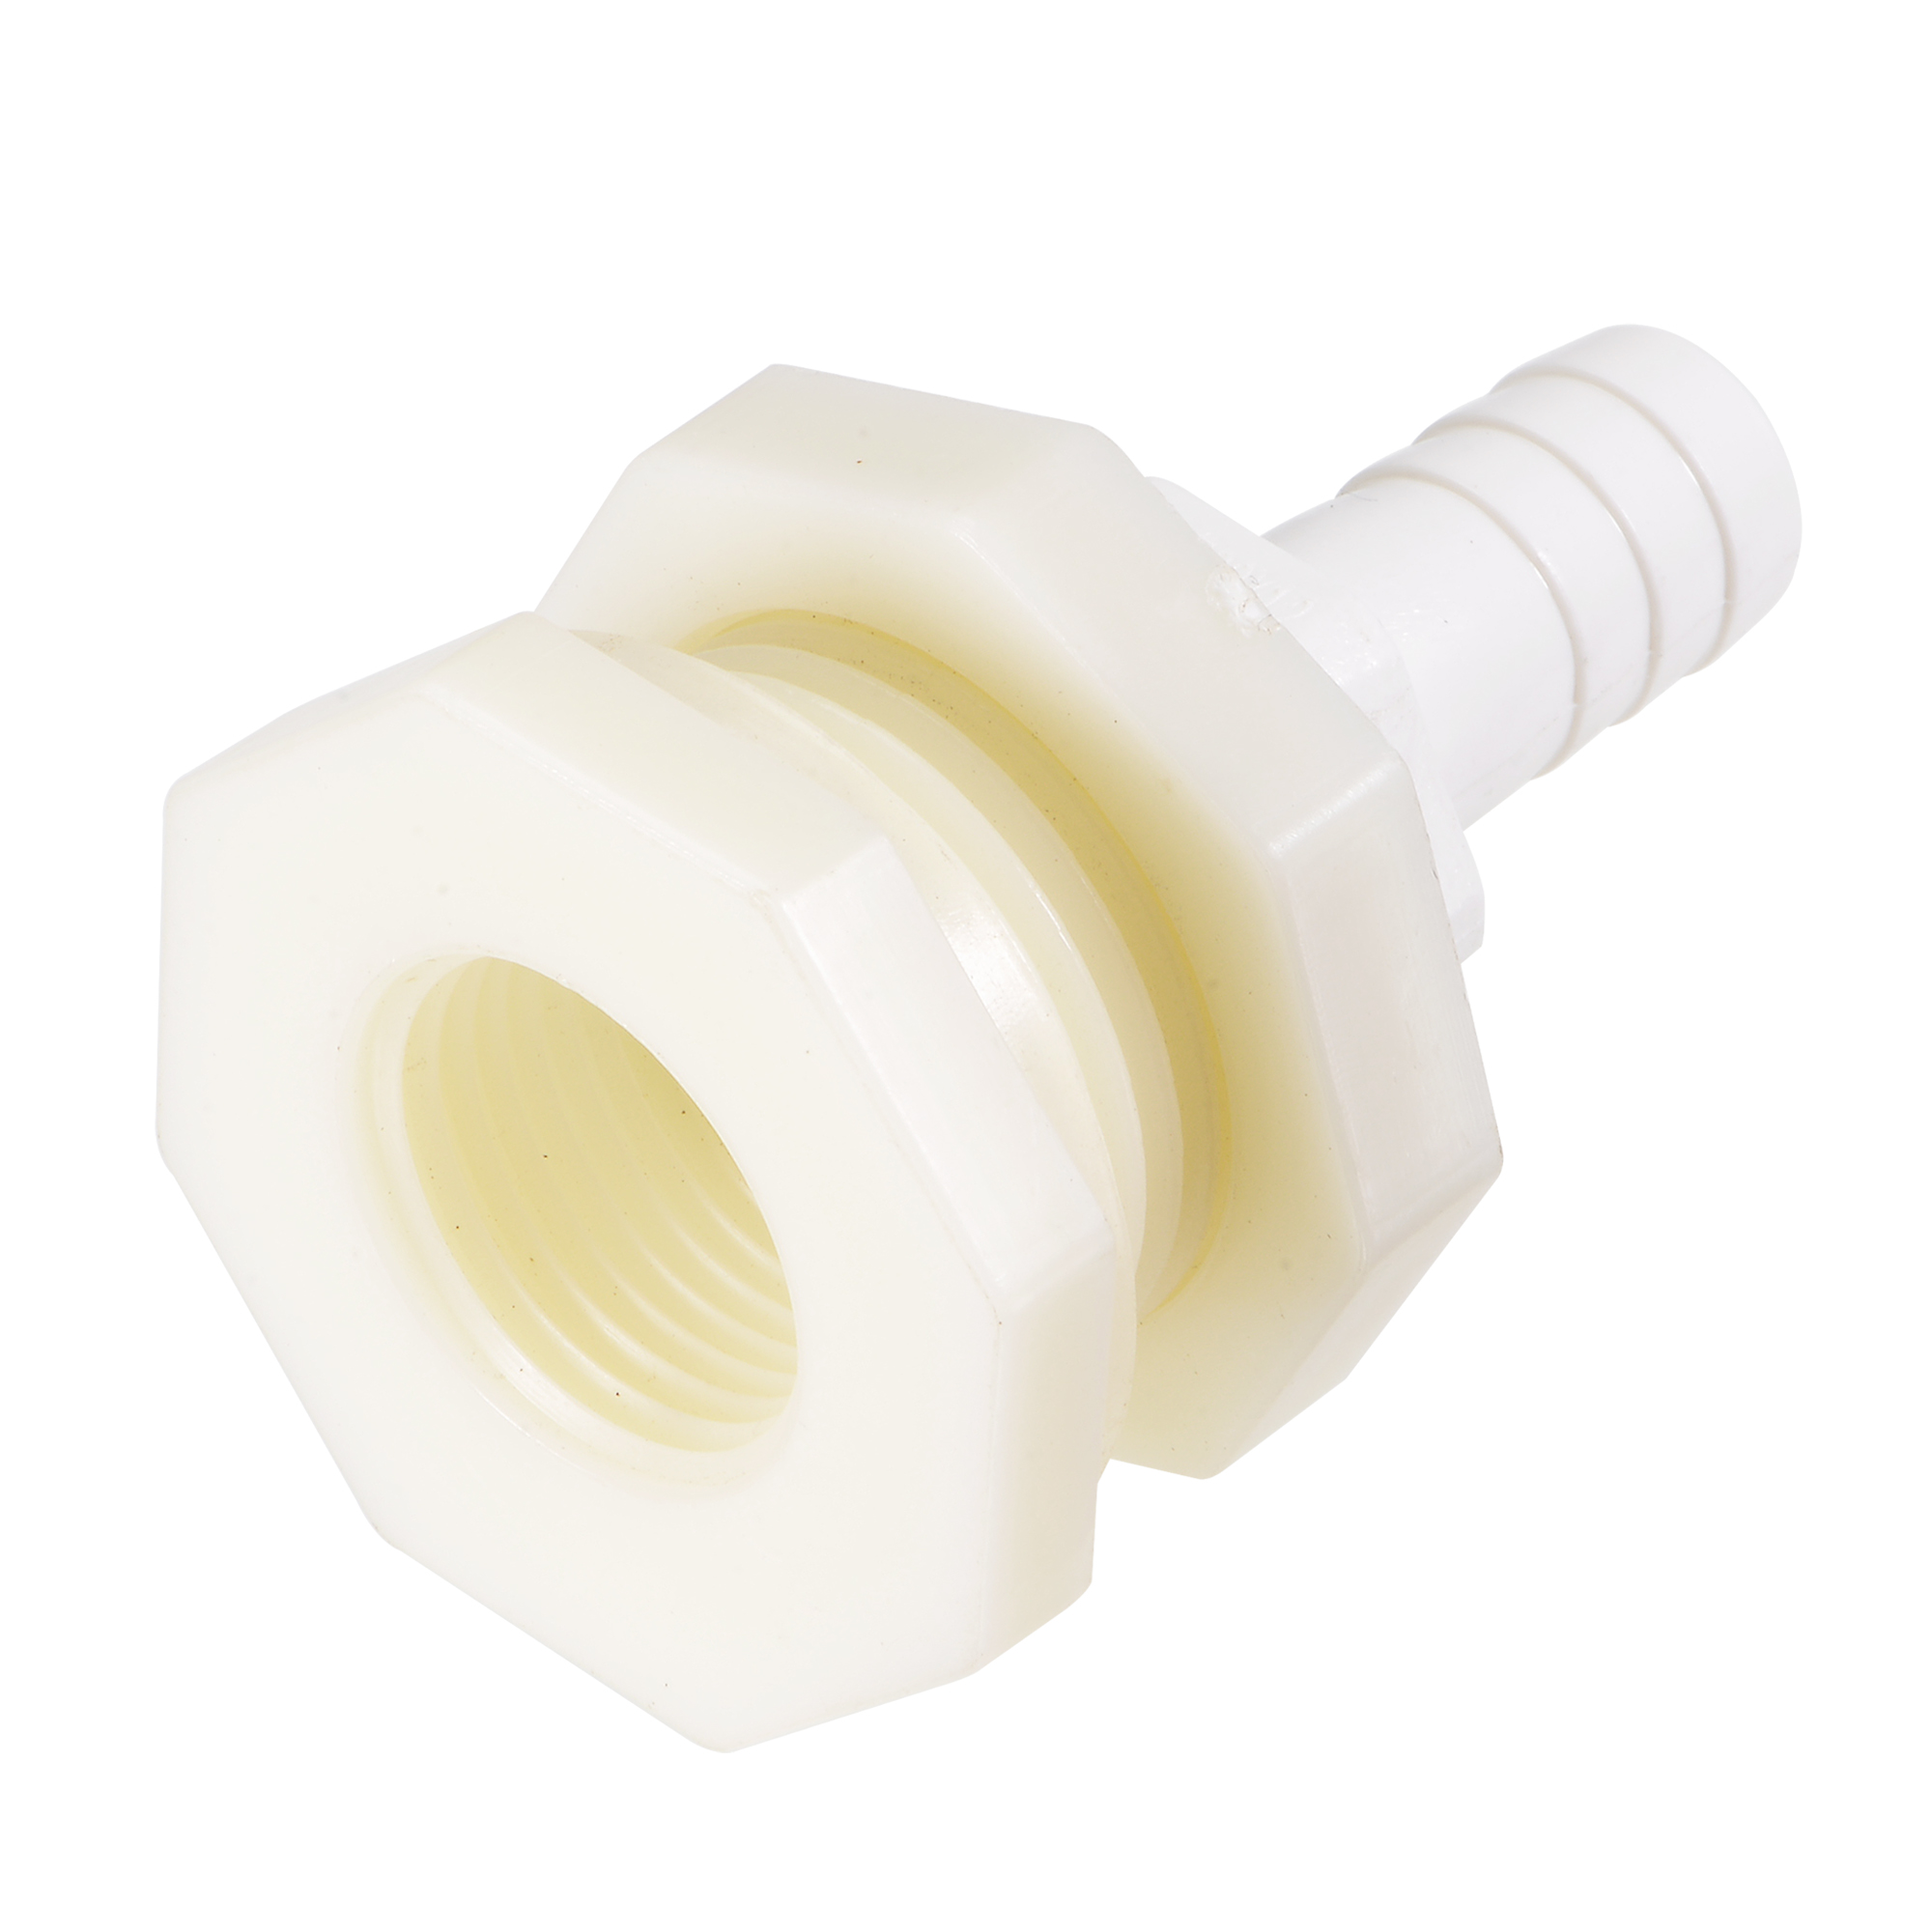 Bulkhead Fitting Adapter 12mm Barbed x G1/2 Female ABS White for Aquariums